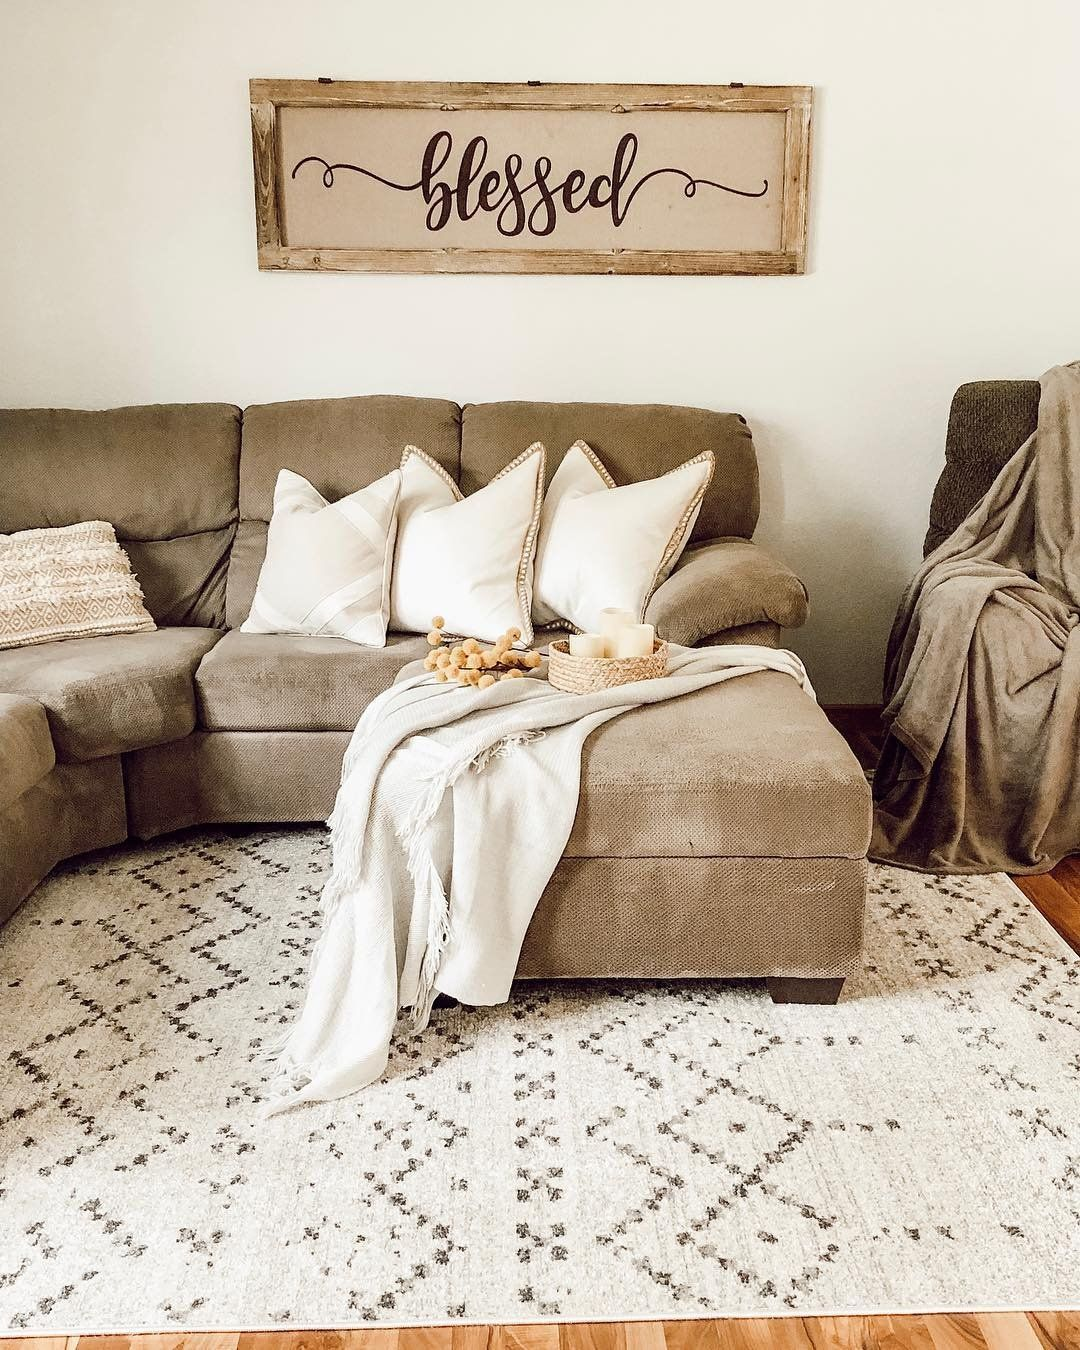 Simple But Meaningful Wall Decor Brings Together Any Living Room Tap To Shop Welcomehom Condo Living Room Decor Condo Living Room Swing Chair Bedroom